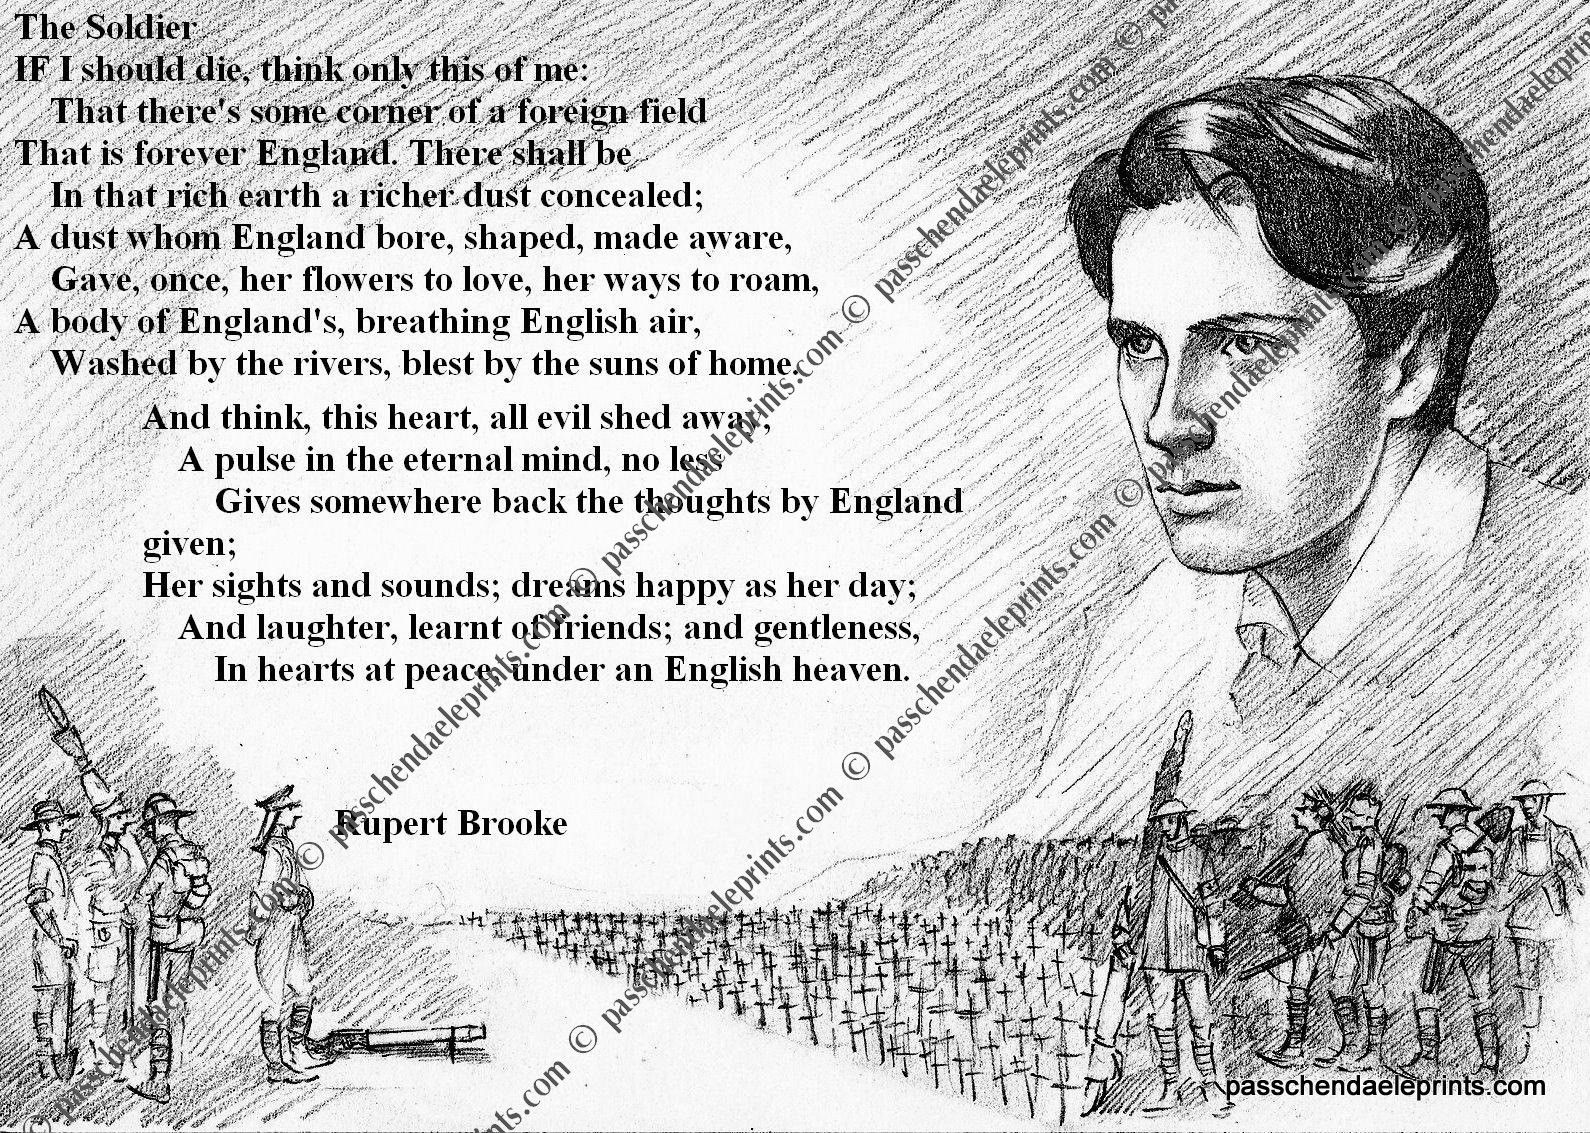 symbolism in the soldier by rupert brooke 'the soldier' by rupert brooke is a very emotional sonnet: the fact that it is a sonnet shows, i think, the love that the fighting men had for england.